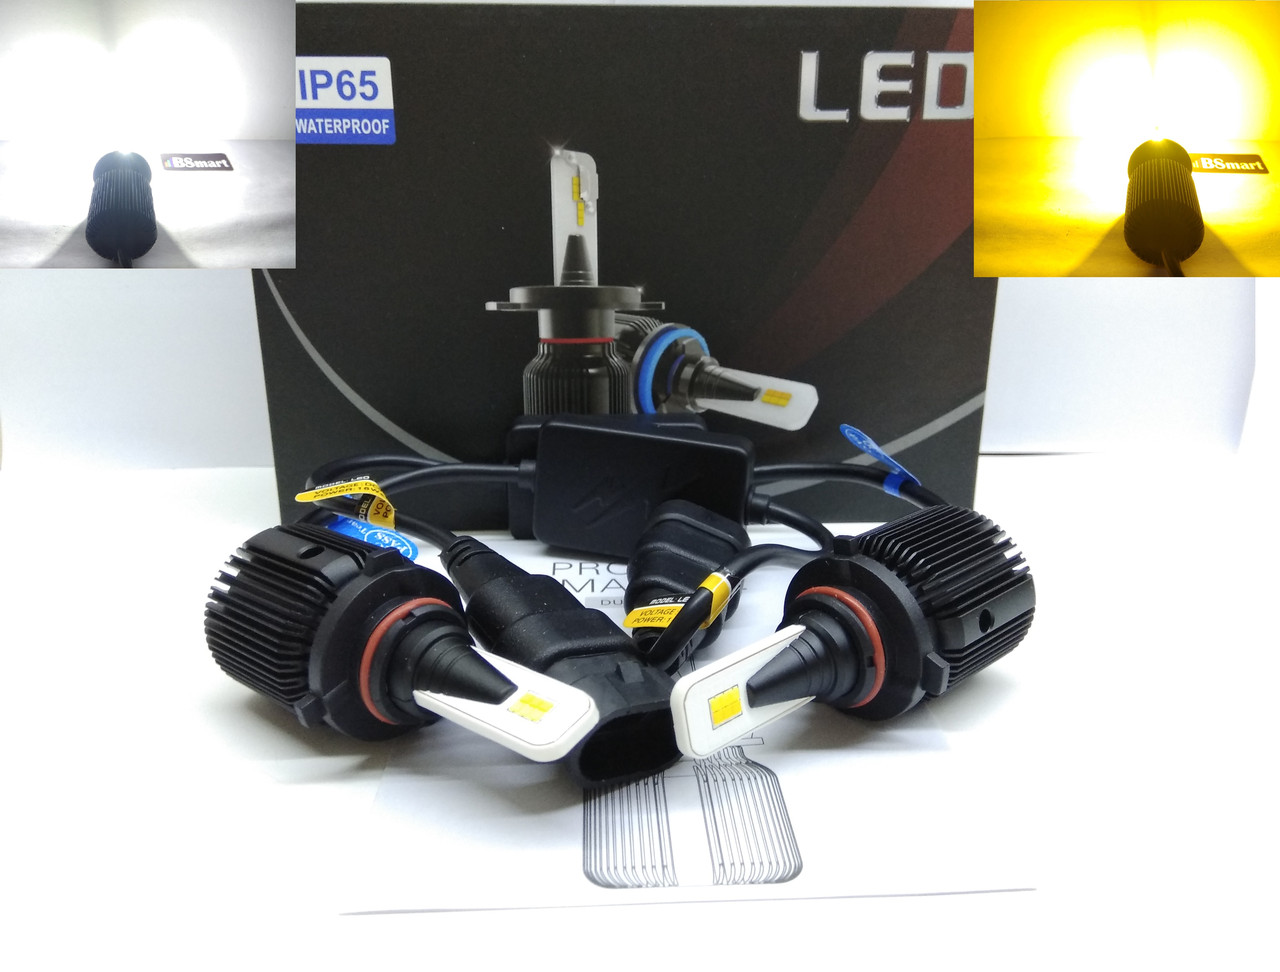 Автолампы LED M1 CSP Dual Color, HB4(9006), 8000LM, 40W, 9-32V